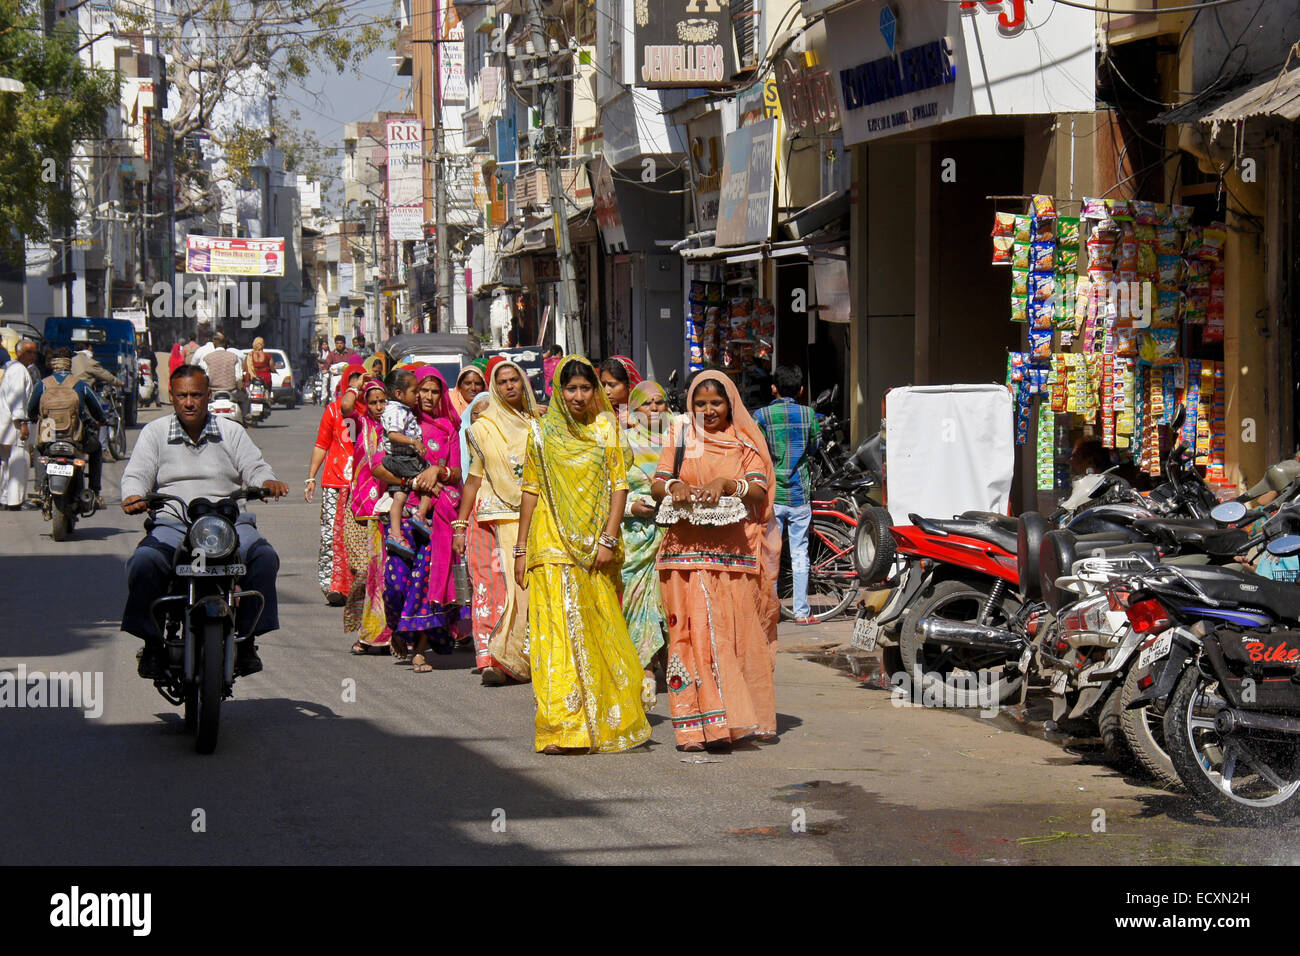 Women walking on street in commercial district, Udaipur, Rajasthan, India - Stock Image